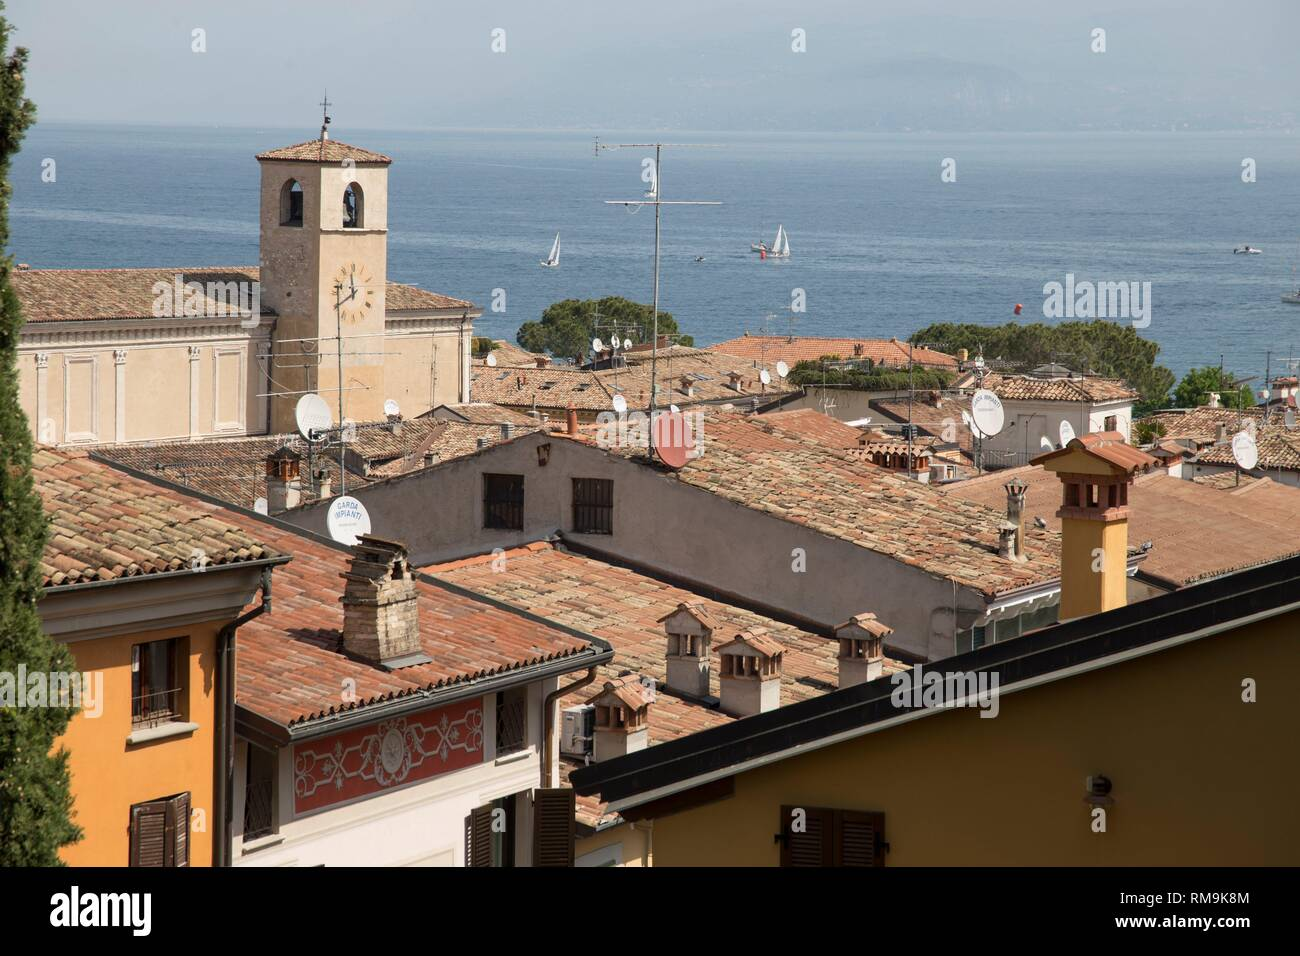 Beautiful aerial views of Desenzano del Garda, a town and comune in the province of Brescia, in Lombardy. Italy. Stock Photo